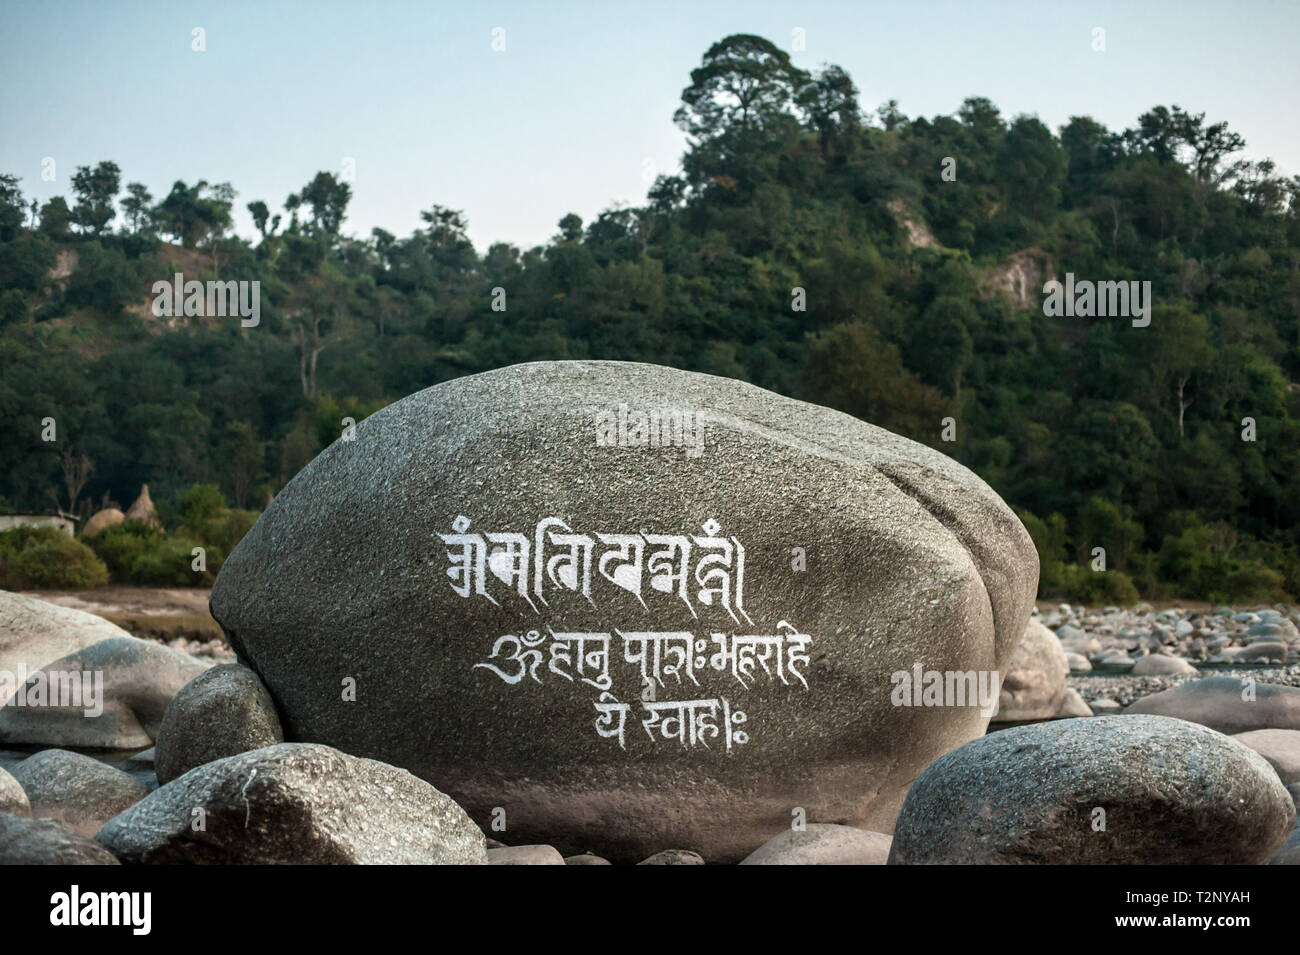 A Tibetan mantra is carved on a huge boulder in a riverbed, under Dharamshala, India: The home in exile of the Dali Lama and thousands of Tibetans. - Stock Image